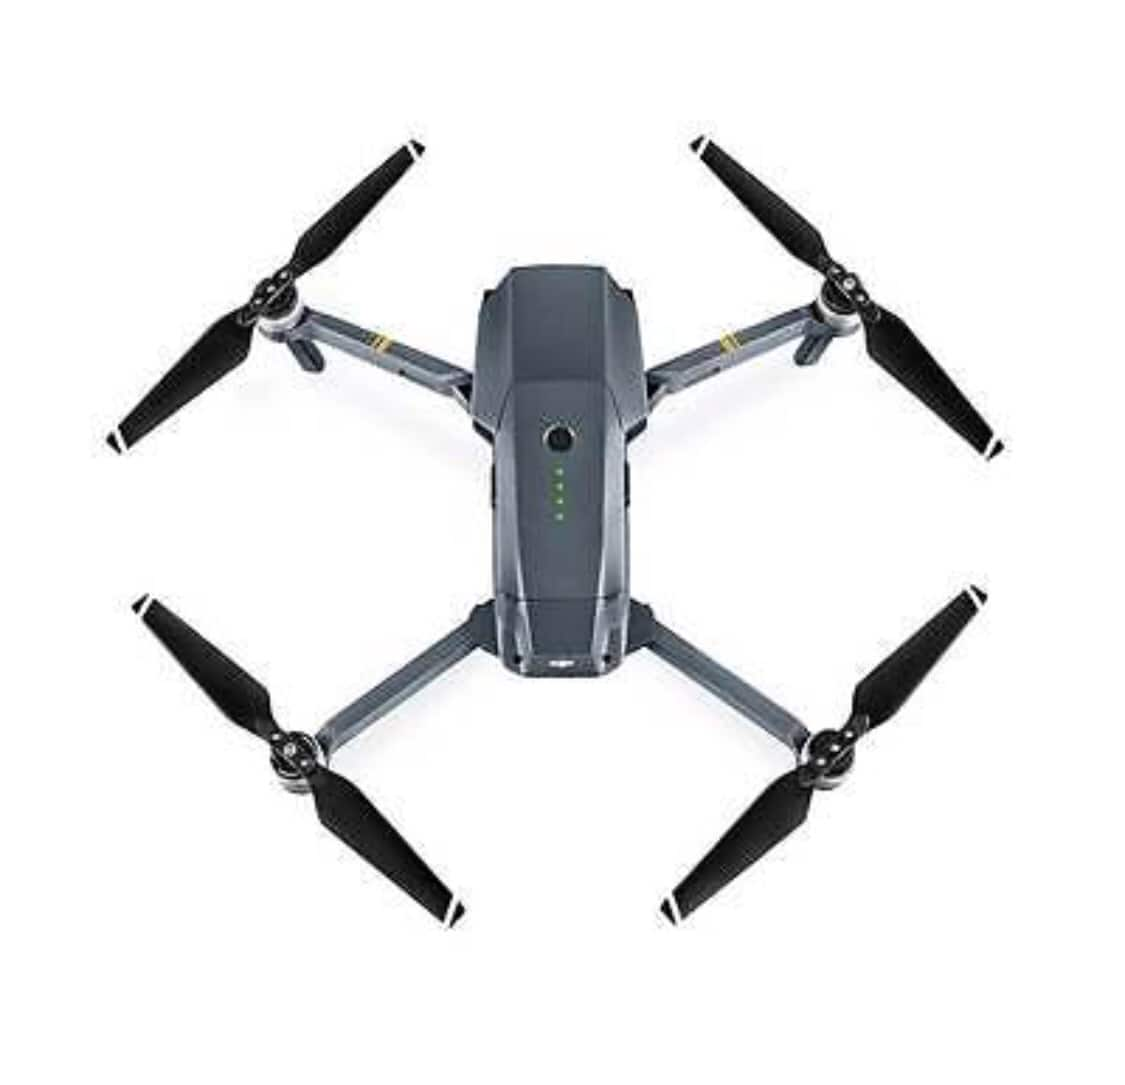 DJI Mavic Pro Quadcopter Drone w/ 4K Camera (Manufacturer Refurbished) on sale for $699. Shipping is free.